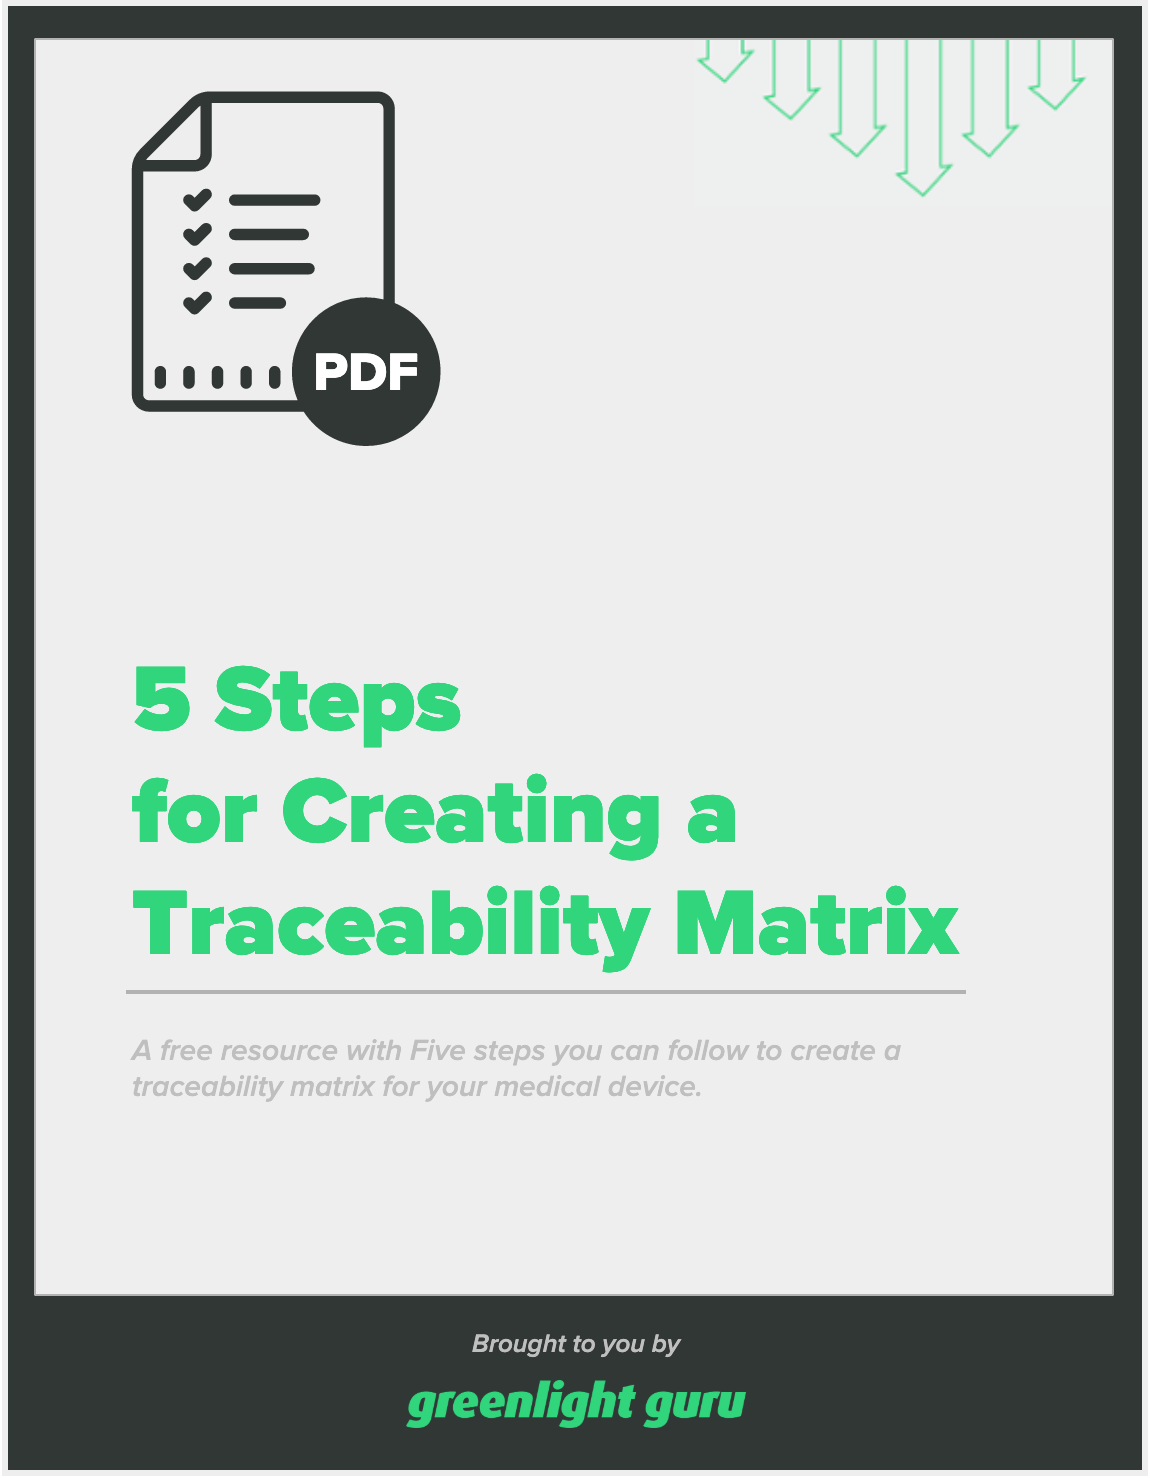 5 Steps for Creating a Traceability Matrix - slide-in cover